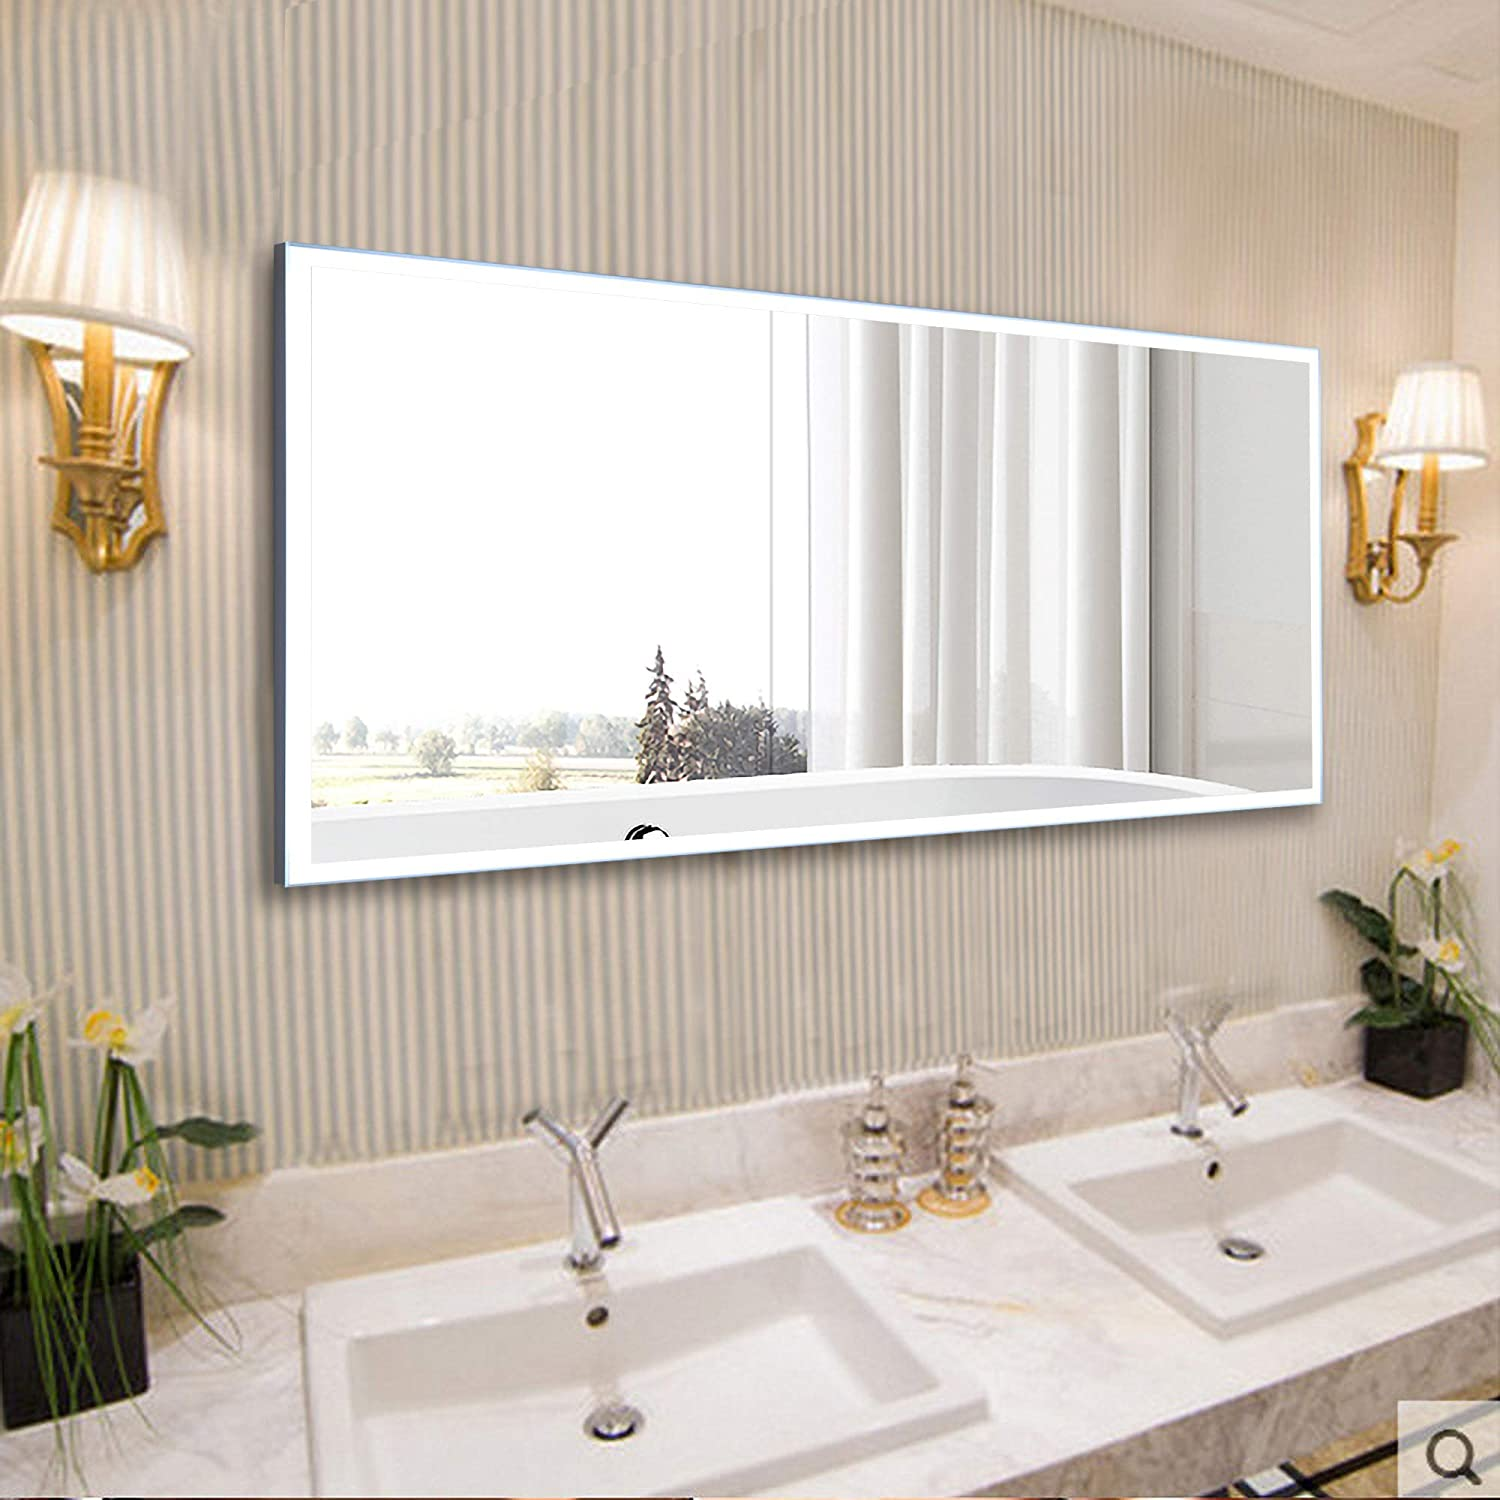 Vanity Art 60 Inch Rectangular Frameless LED Lighted Illuminated Bathroom Vanity Wall Mirror | Fog Dimmable Light with Touch Sensor Switch - VA3D-60